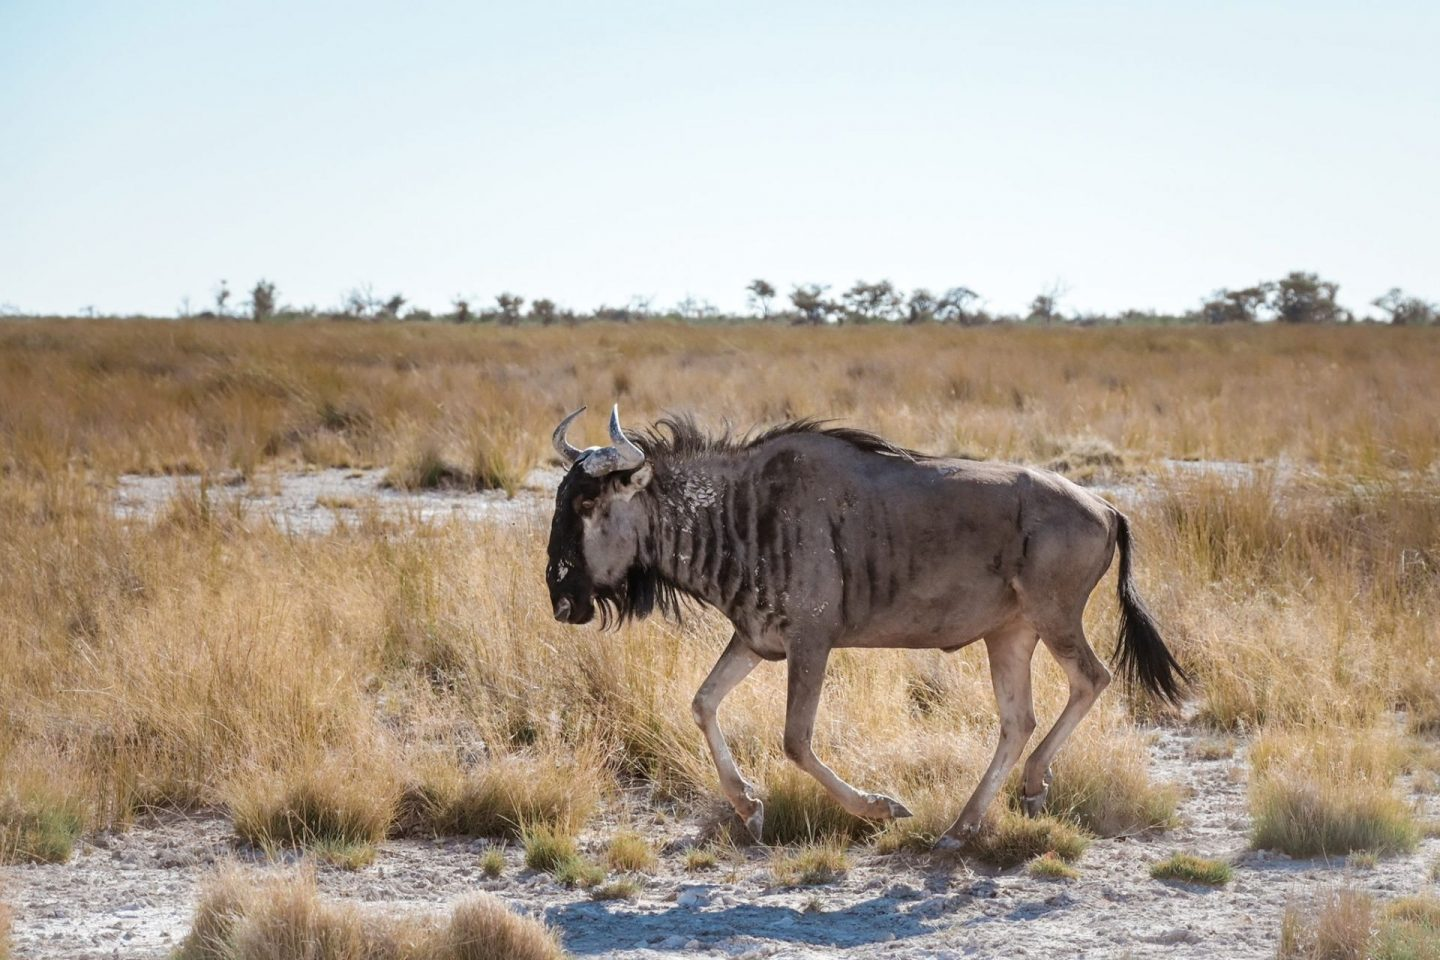 Gnu on Namibia self drive safari in Etosha National Park